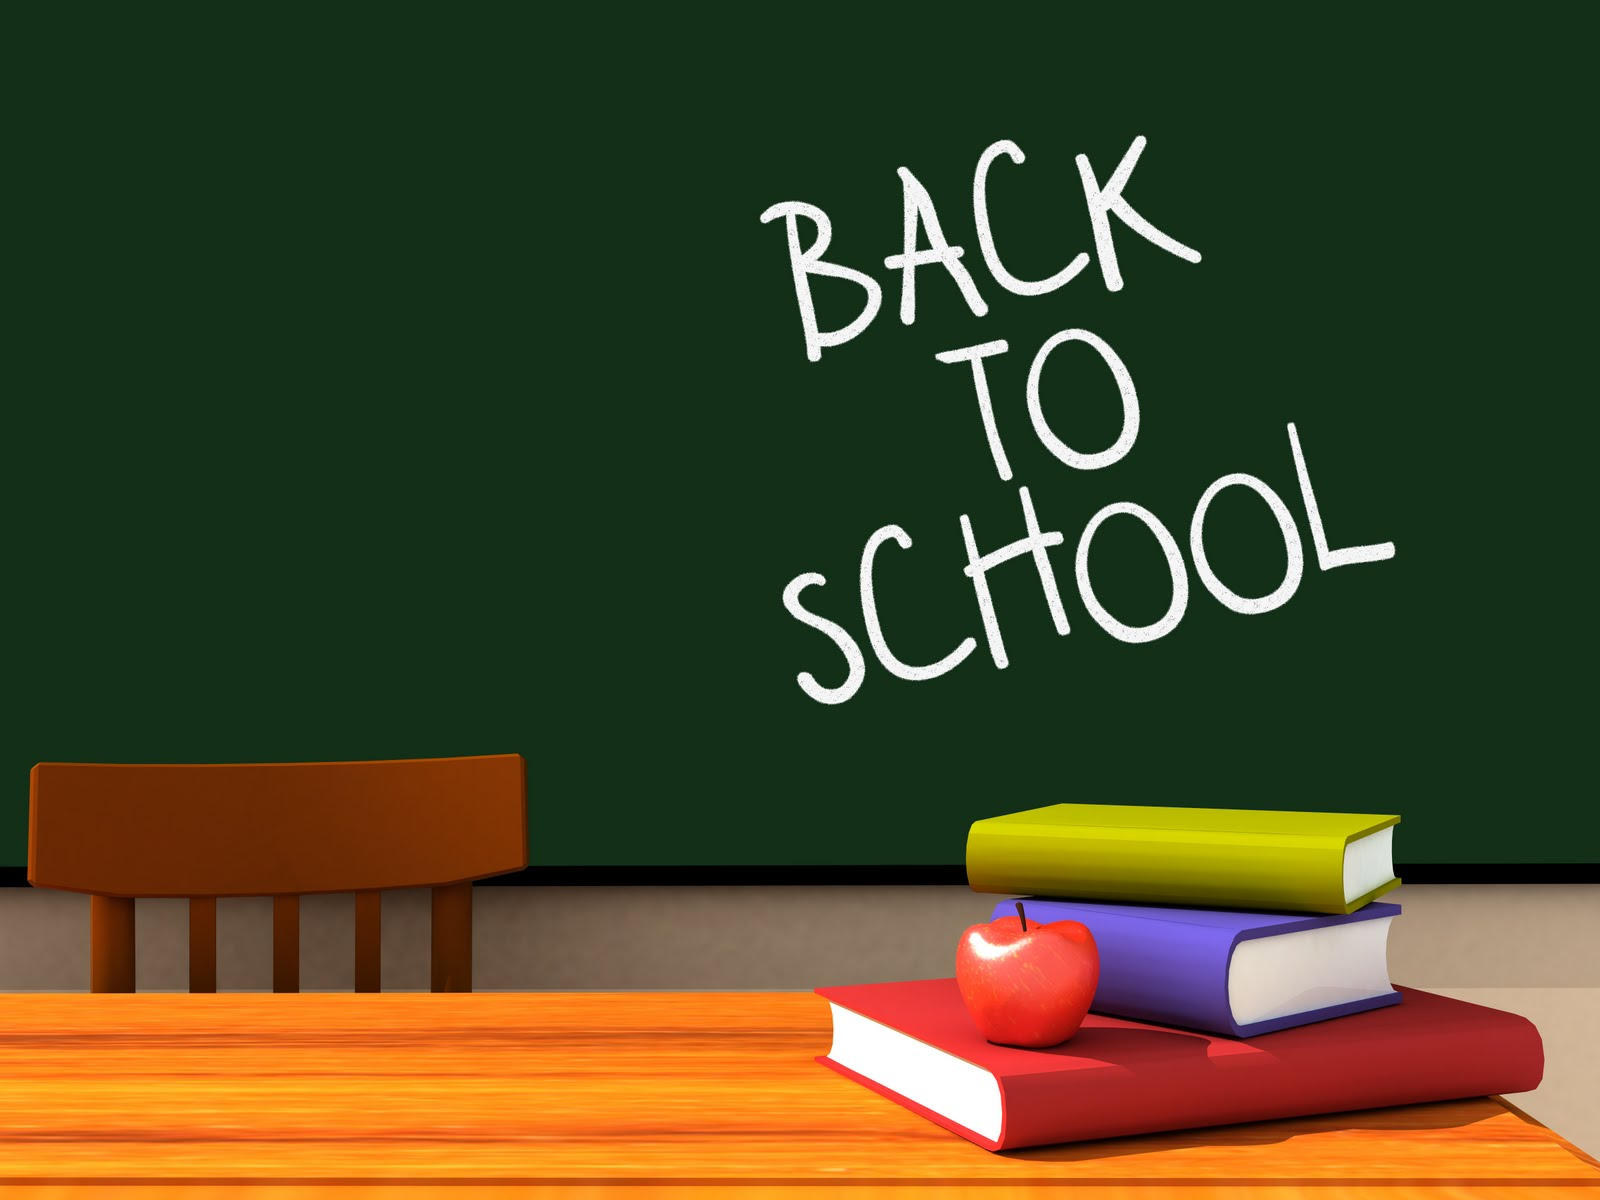 Download Back To School Wallpaper Hd Is Cool Wallpapers